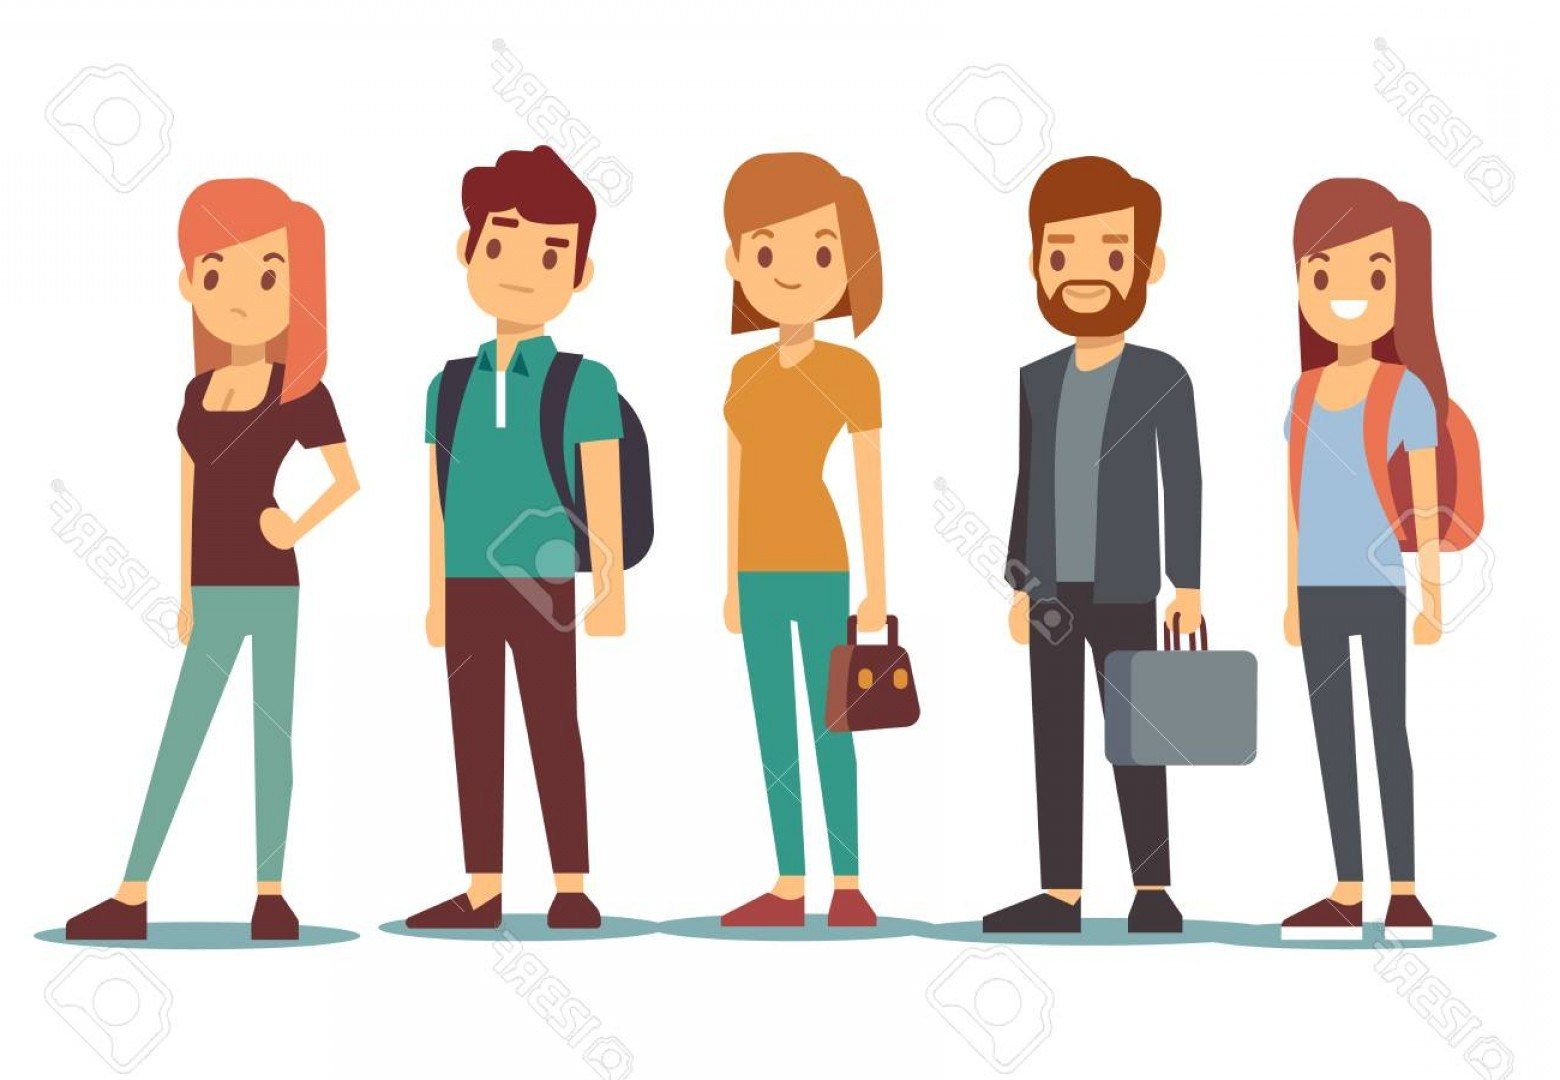 People waiting in line clipart 9 » Clipart Portal.